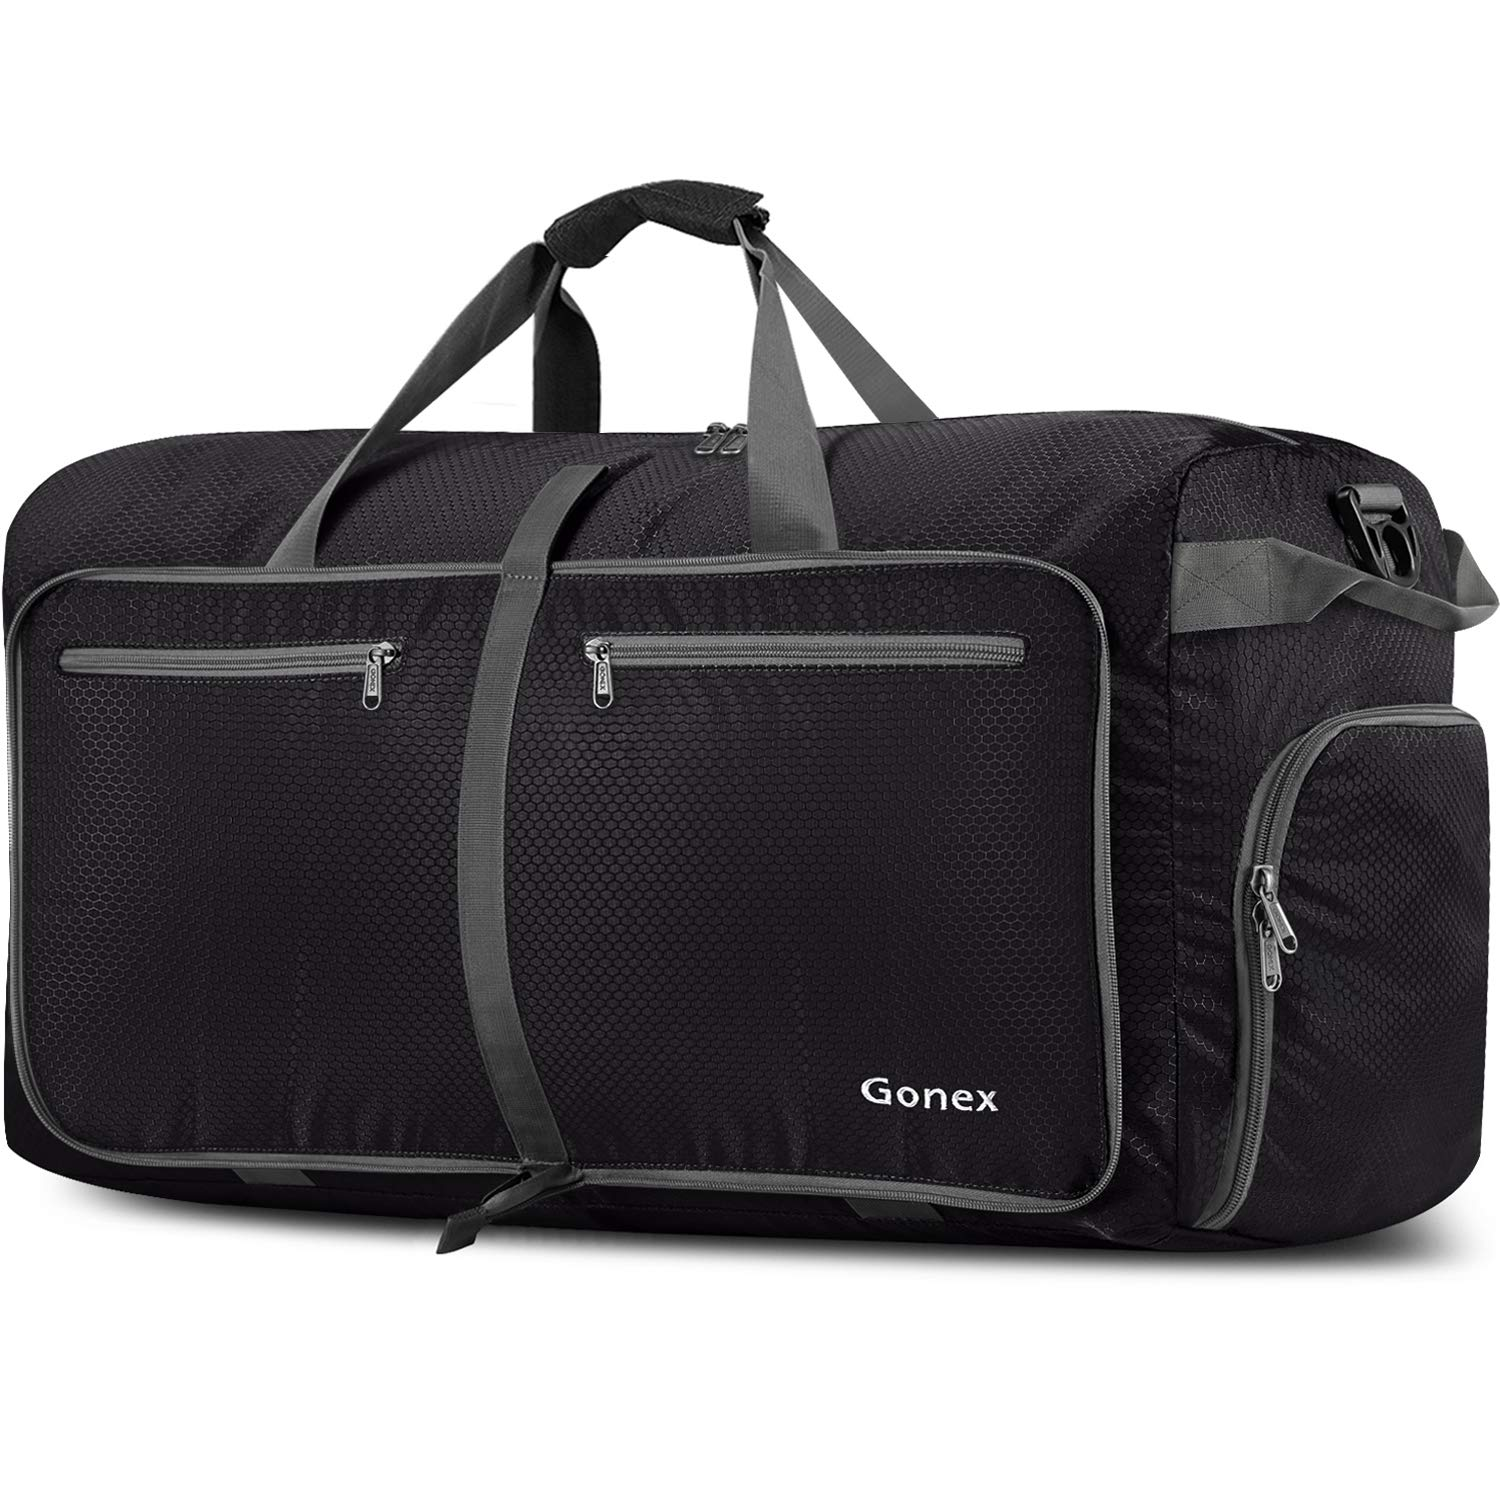 Gonex 150L Extra Large Duffle Bag, Packable Travel Luggage Shopping XL Duffel Black